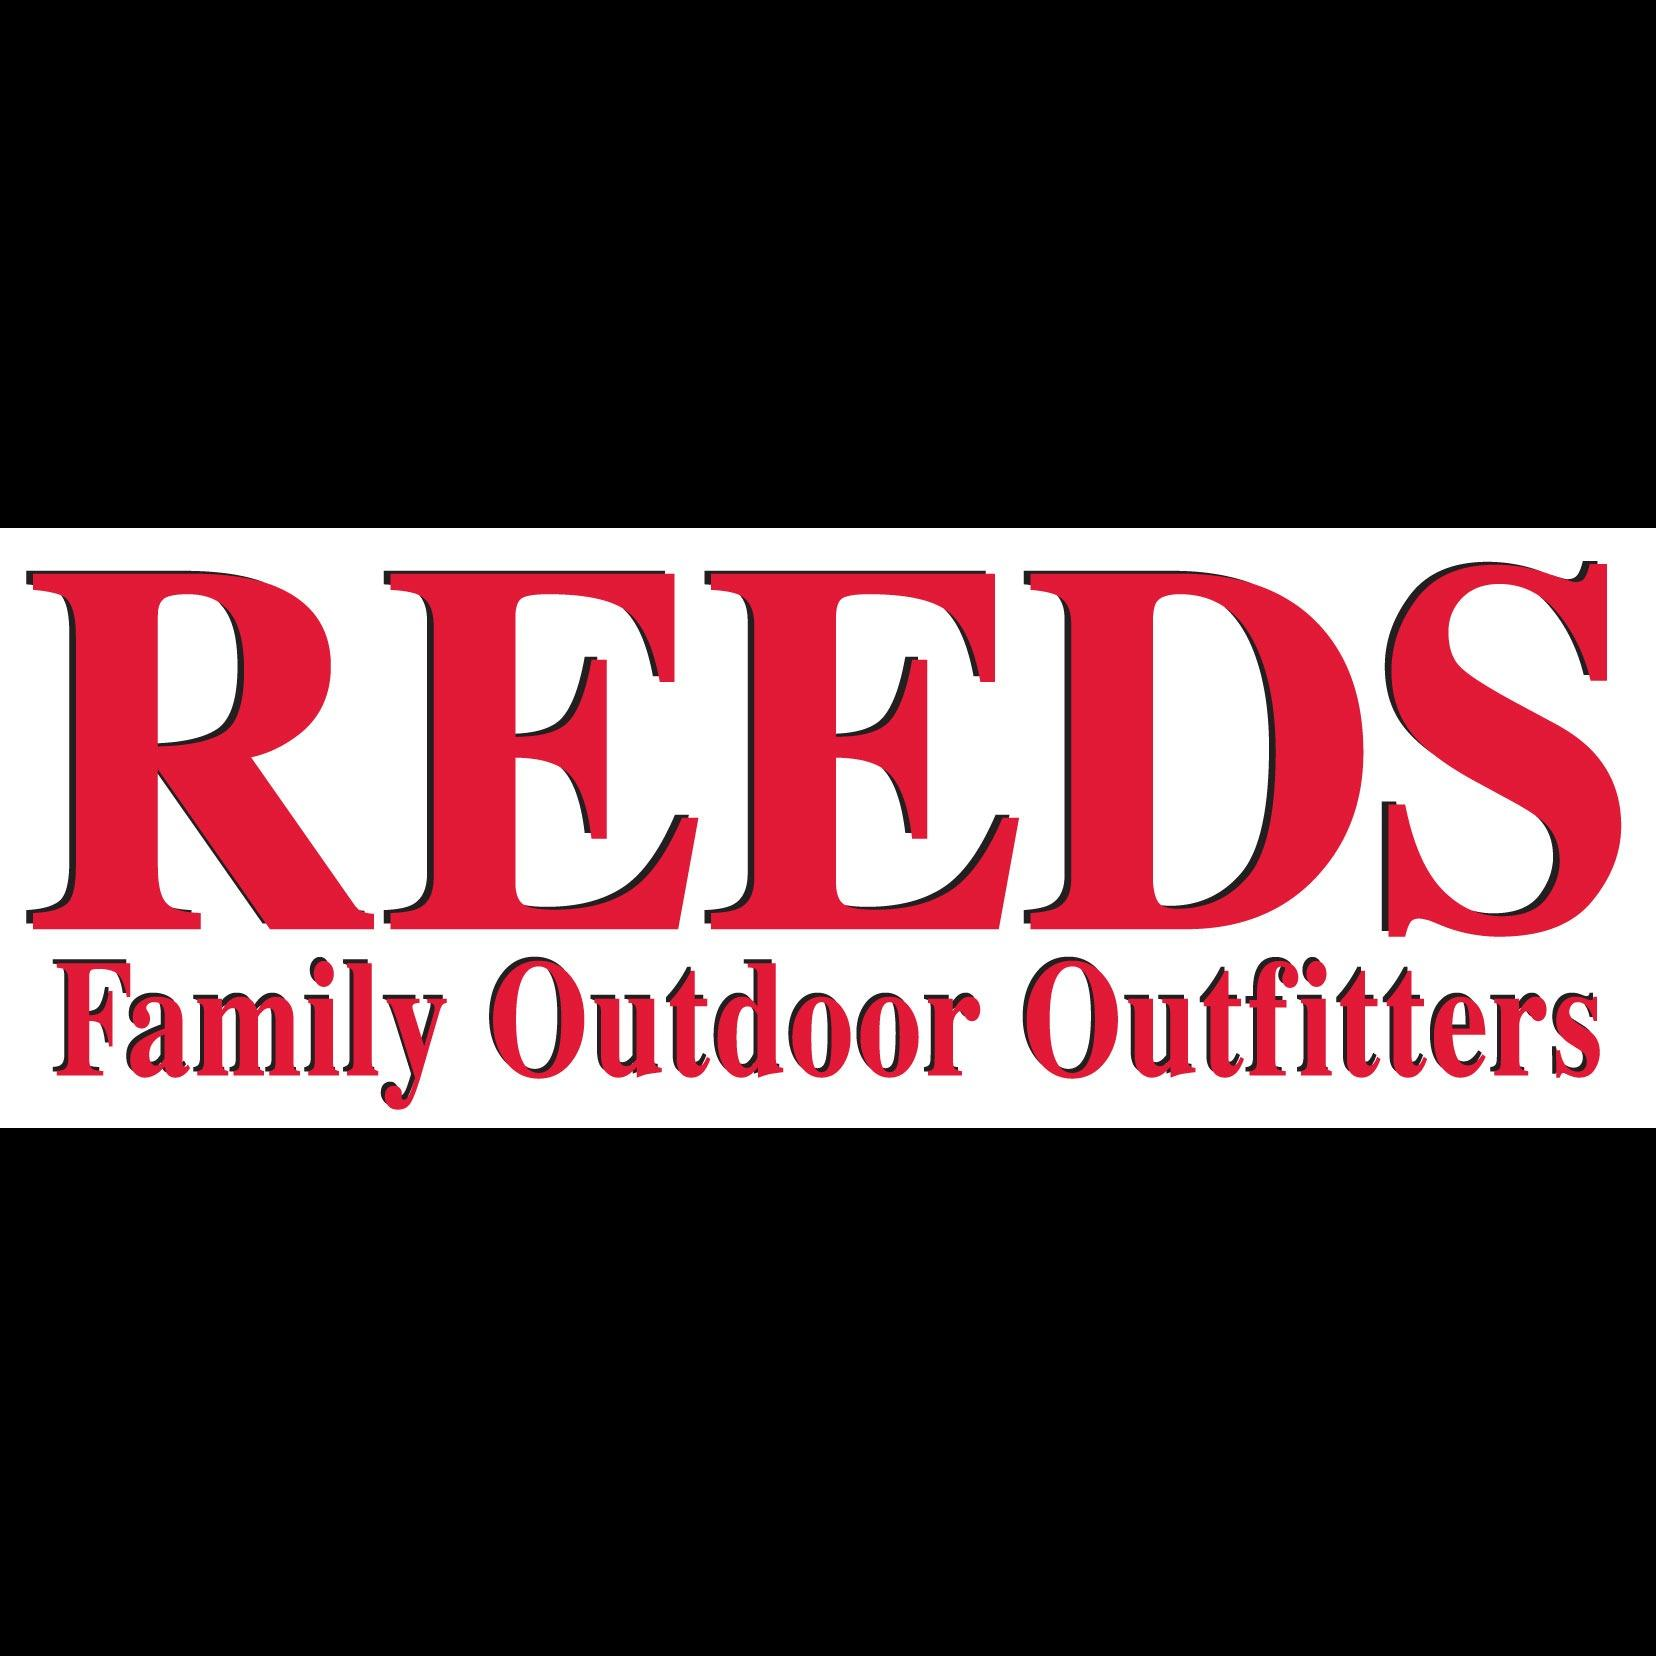 Reeds Family Outdoor Outfitters image 1